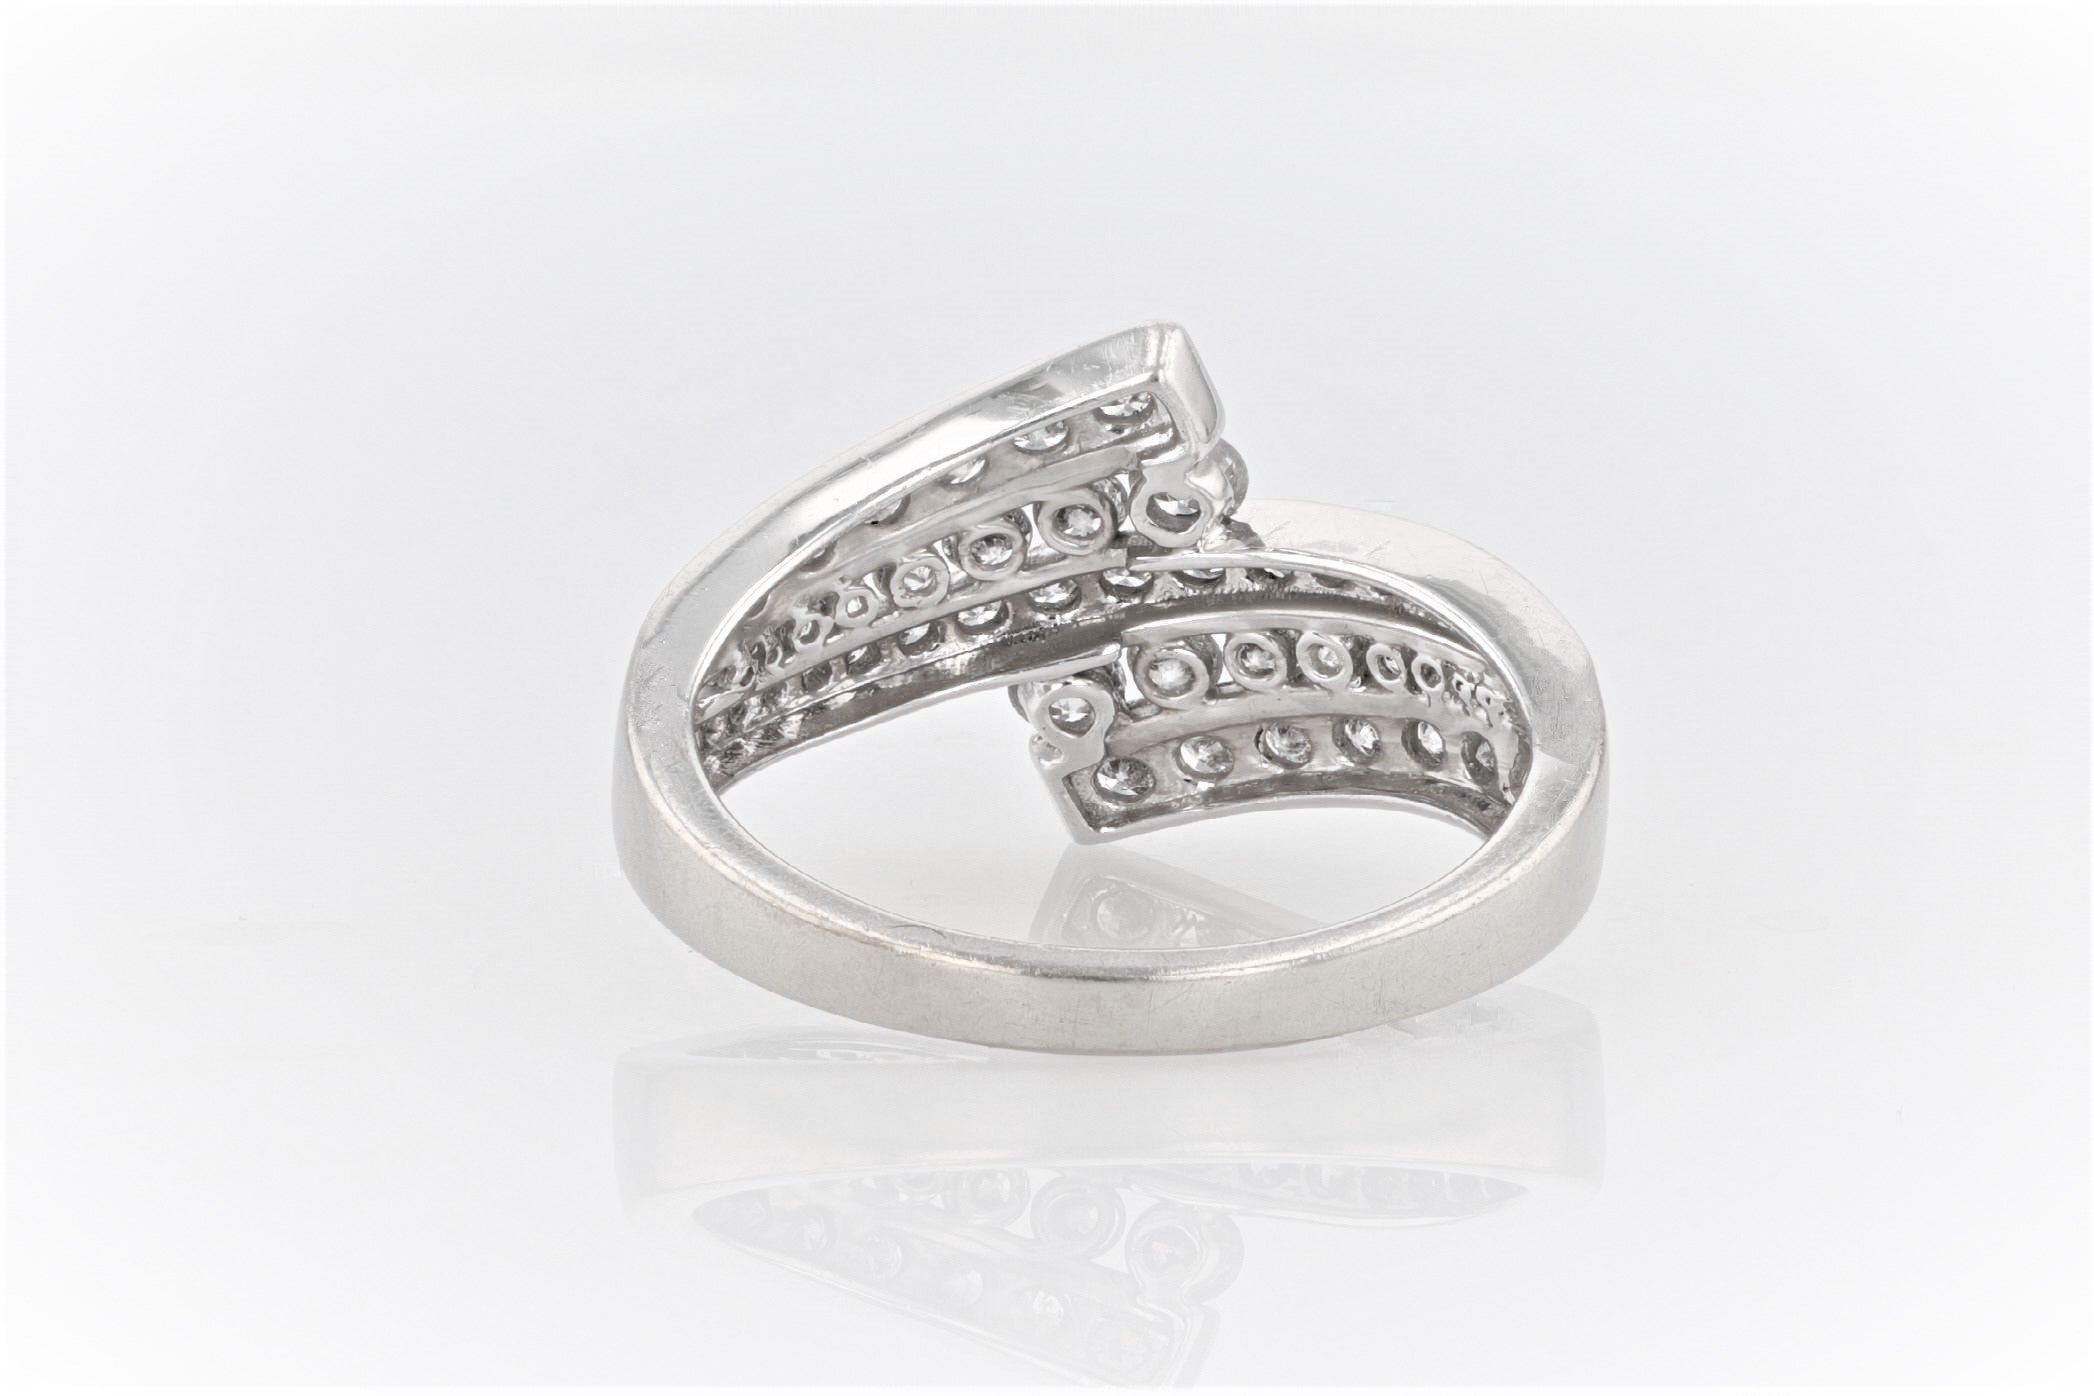 10K Women's White Gold (Stamped) Shank Dress Ring